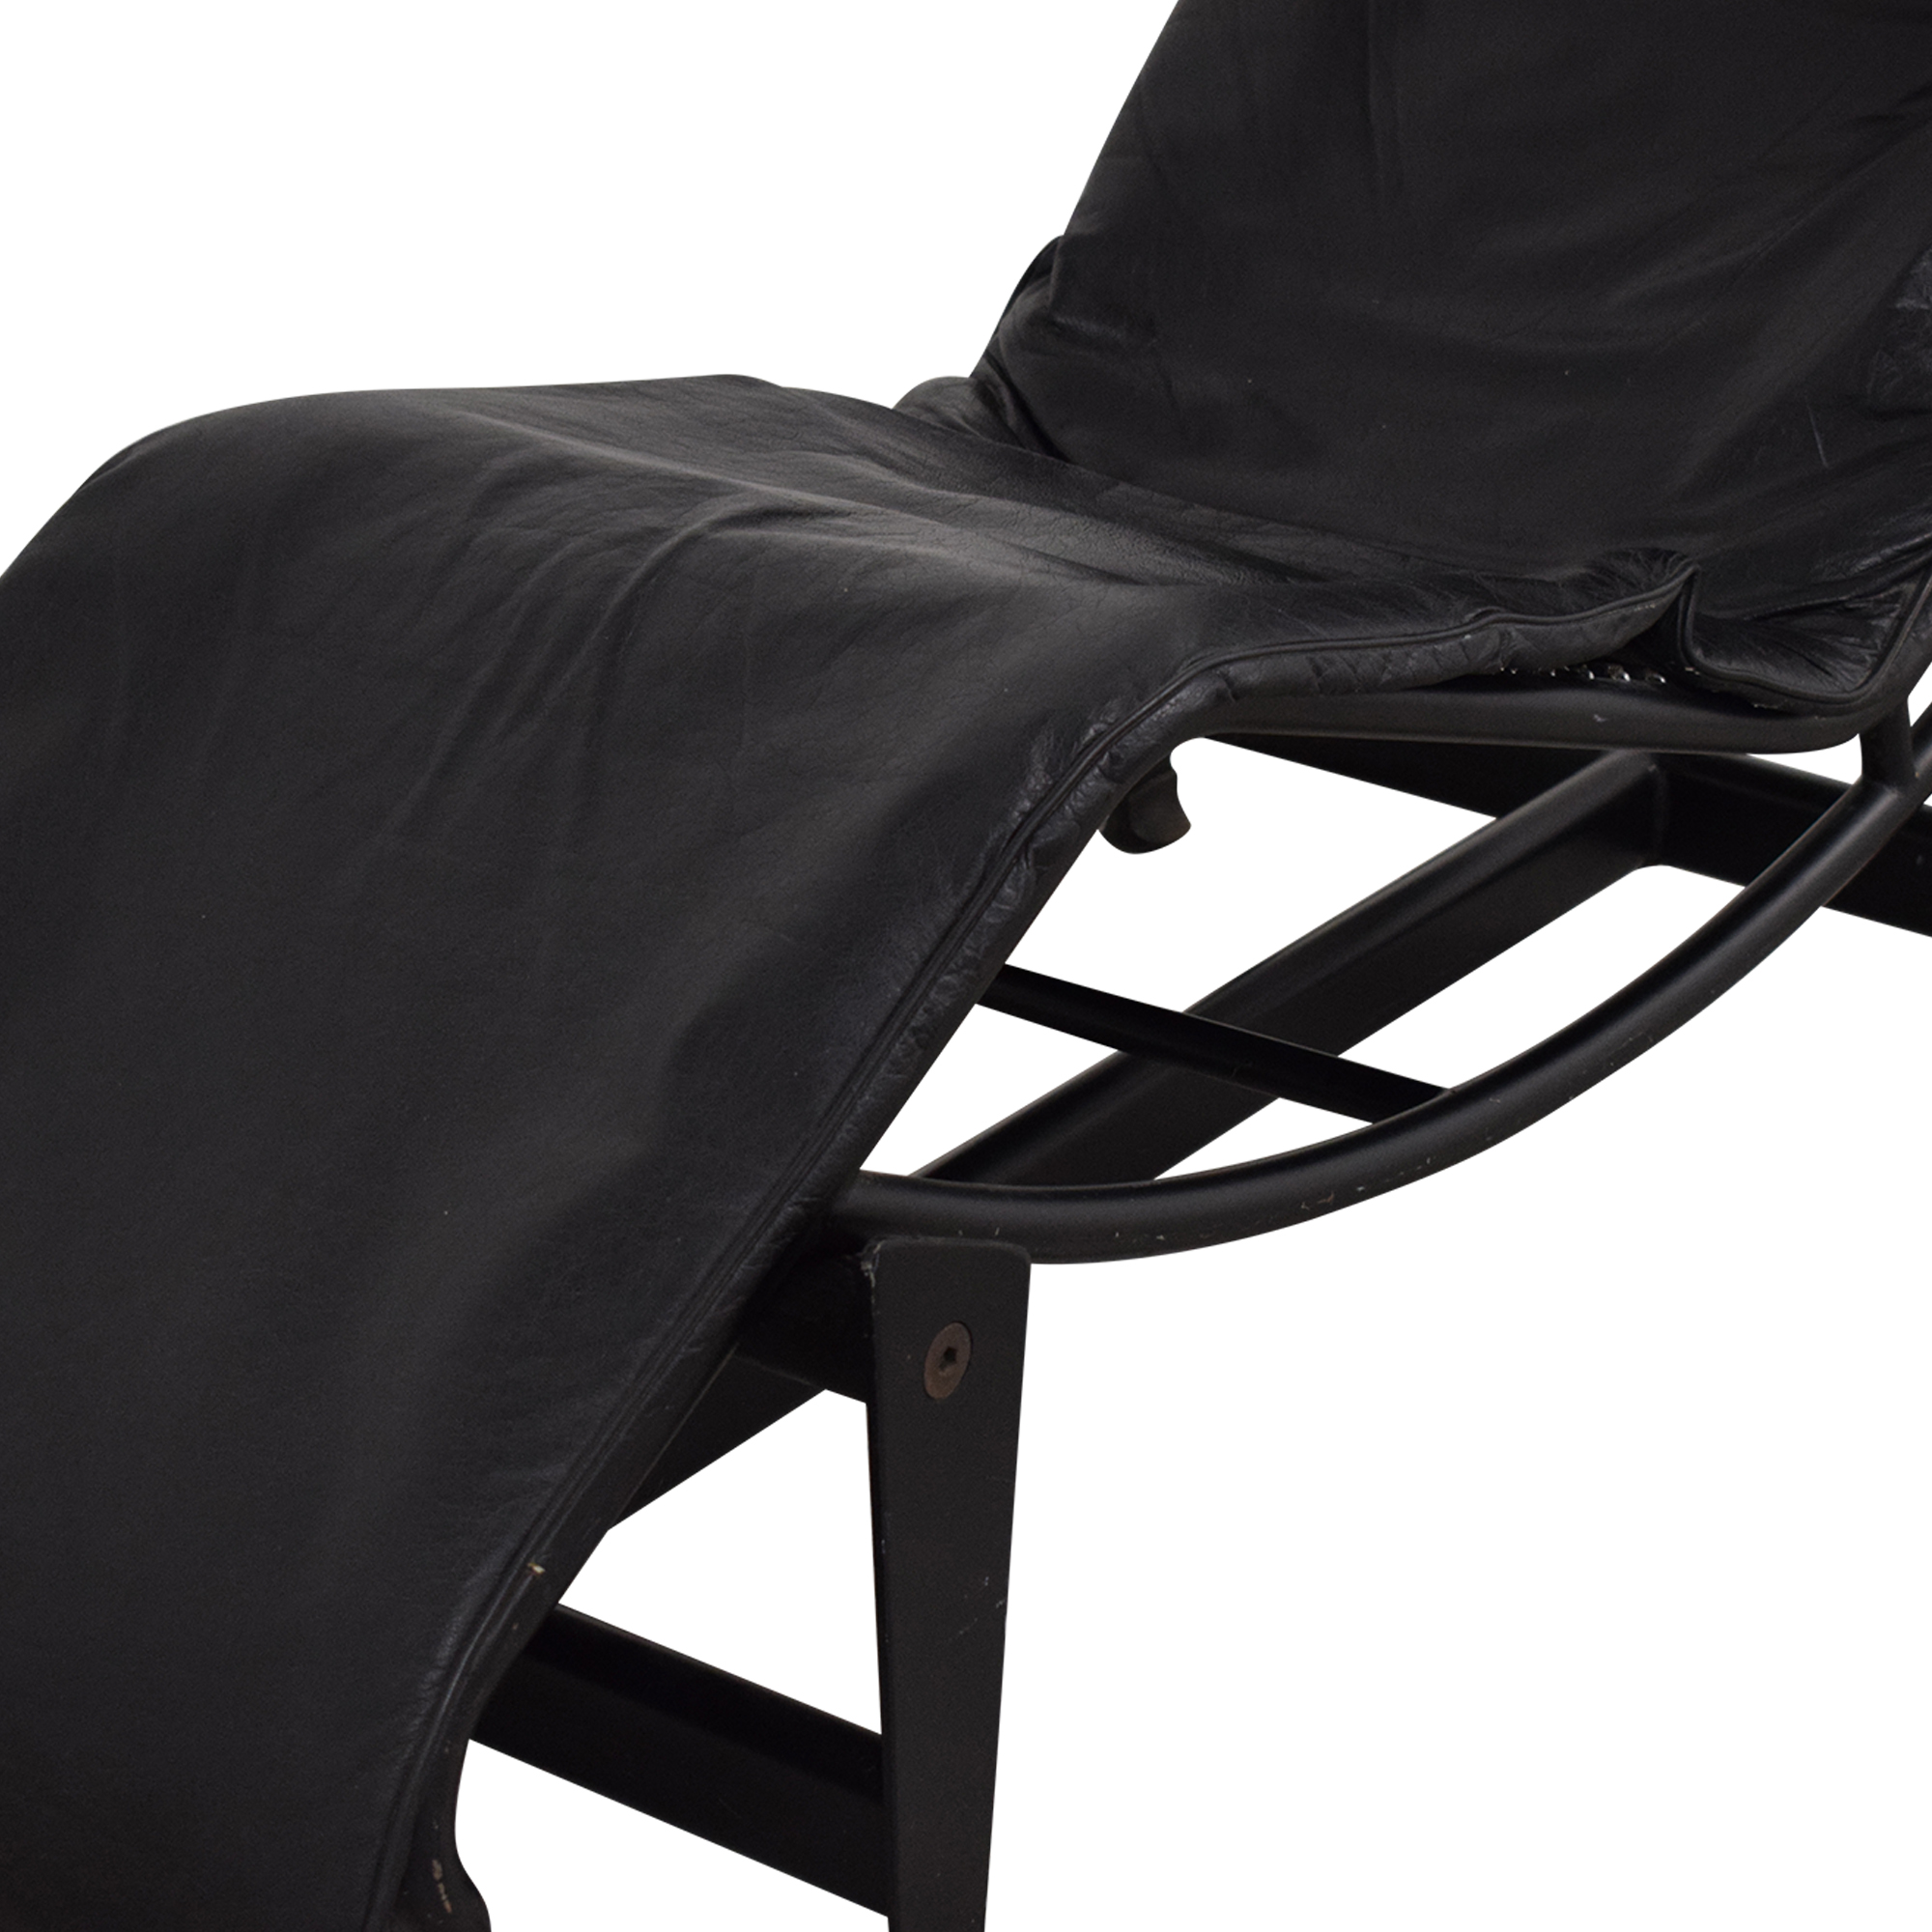 Le Corbusier Style Chaise Lounge Chair discount